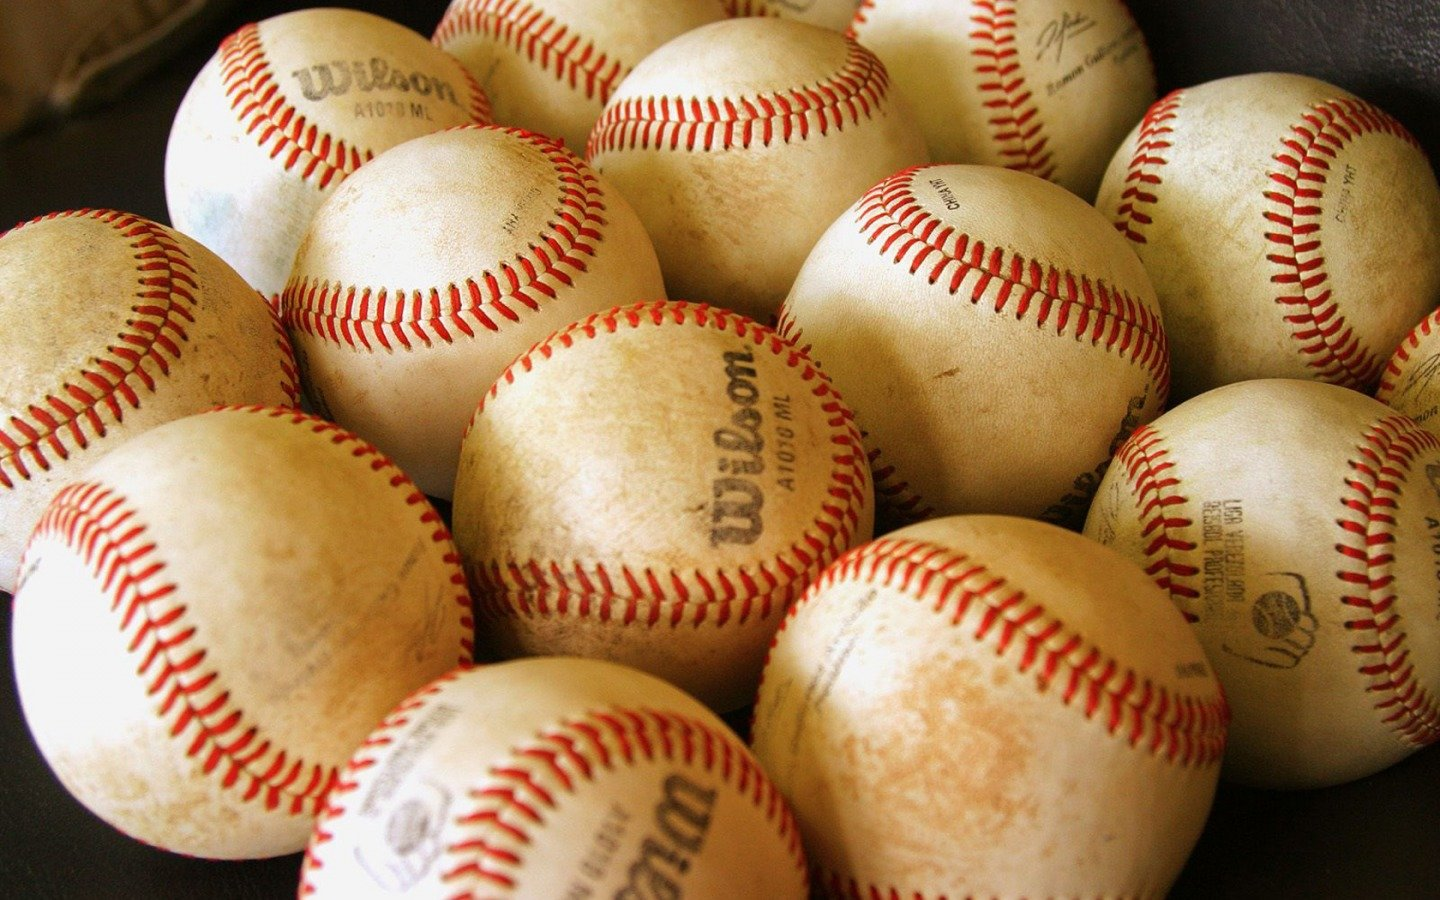 Free download Baseball background ID:334009 hd 1440x900 for PC